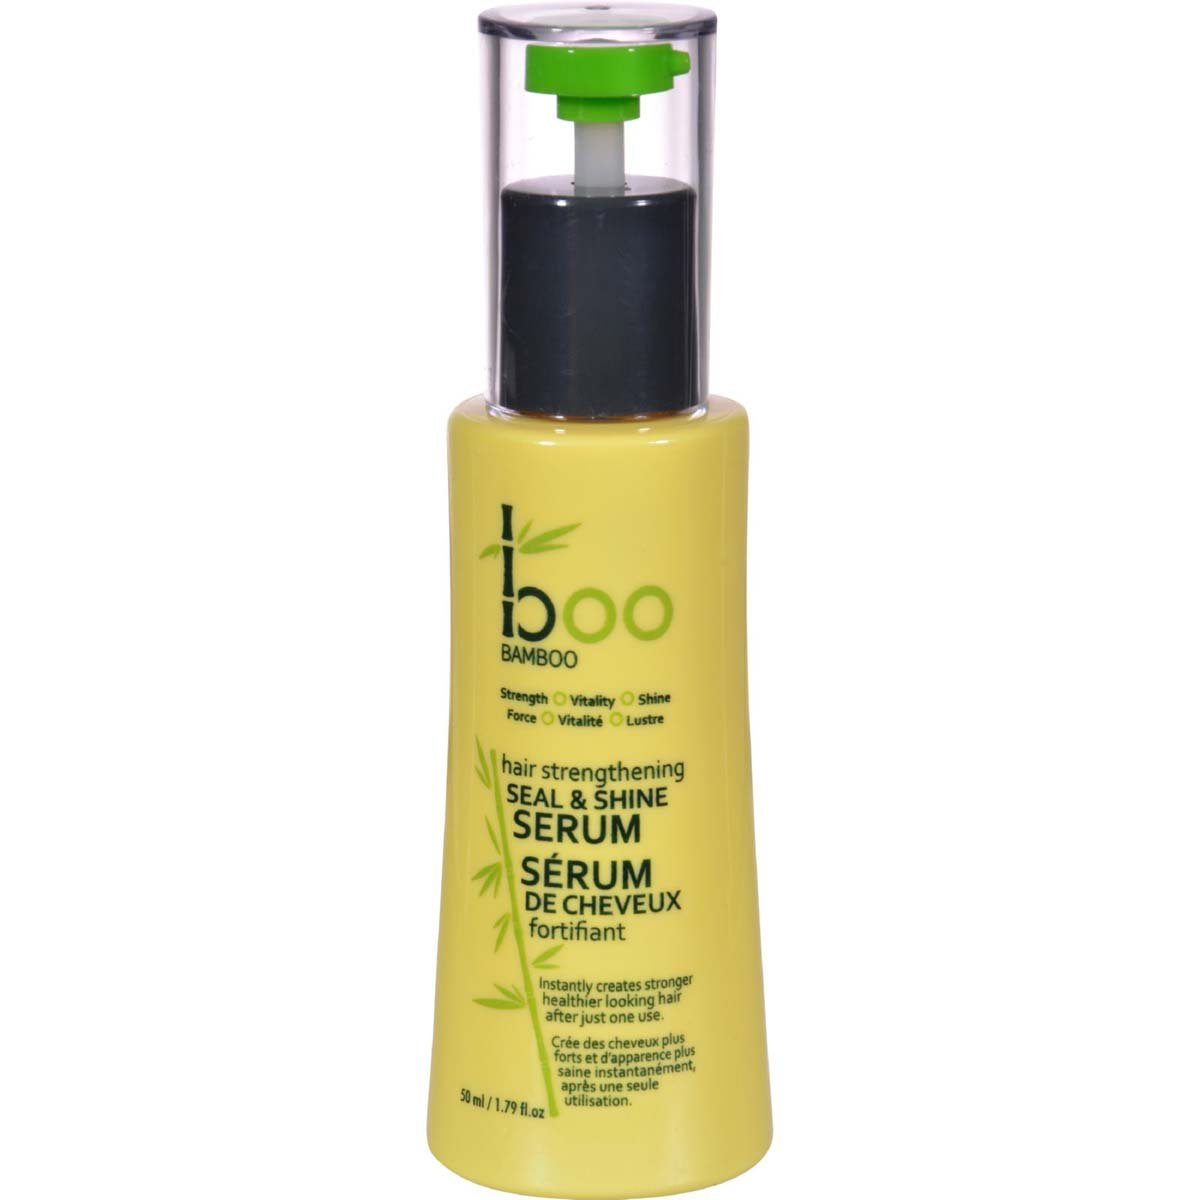 Boo Bamboo Hair Strengthening Seal and Shine Serum, 1.69 OZ